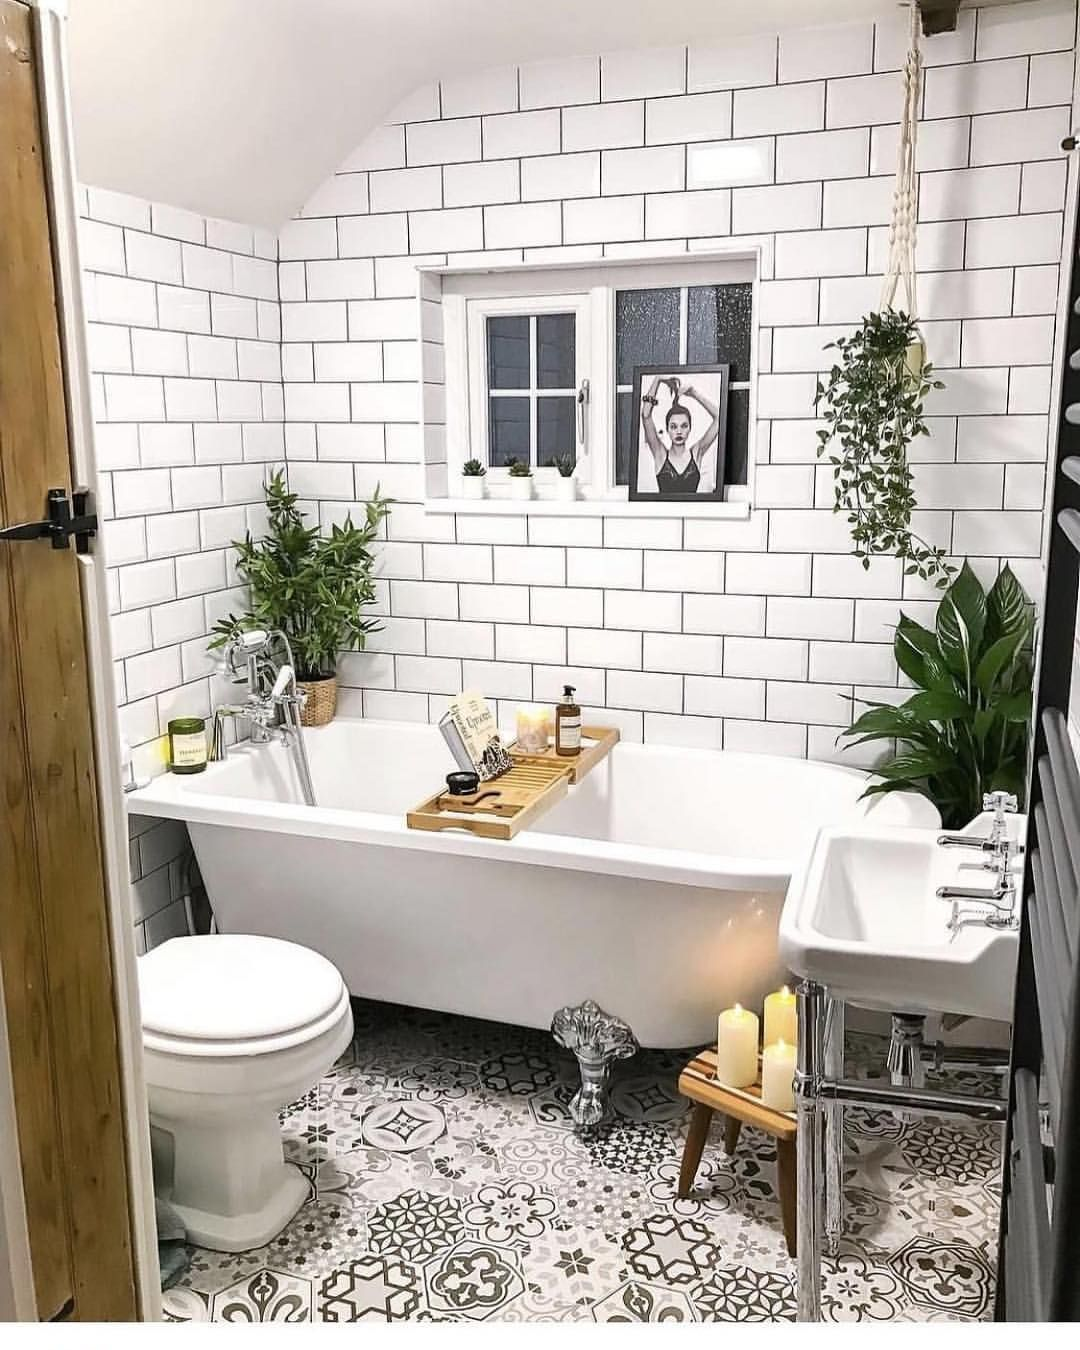 Have You Ever Seen Such A Fab Bathroom Floor This Bathroom Goldenfoxcottage Had Cottage Bathroom Design Ideas Bathroom Interior Design Bathroom Inspiration